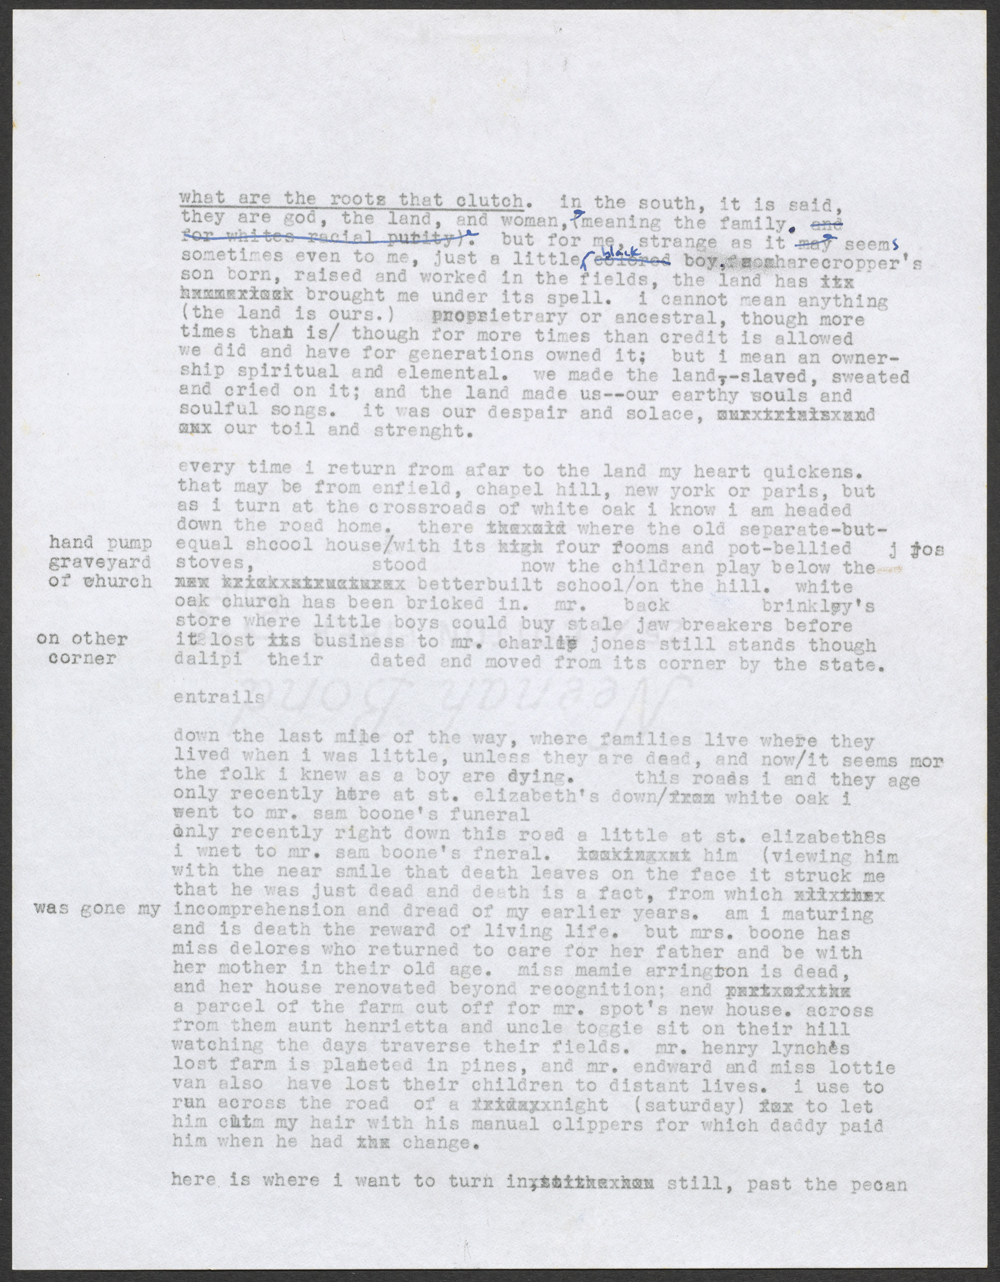 A typed page of an essay.